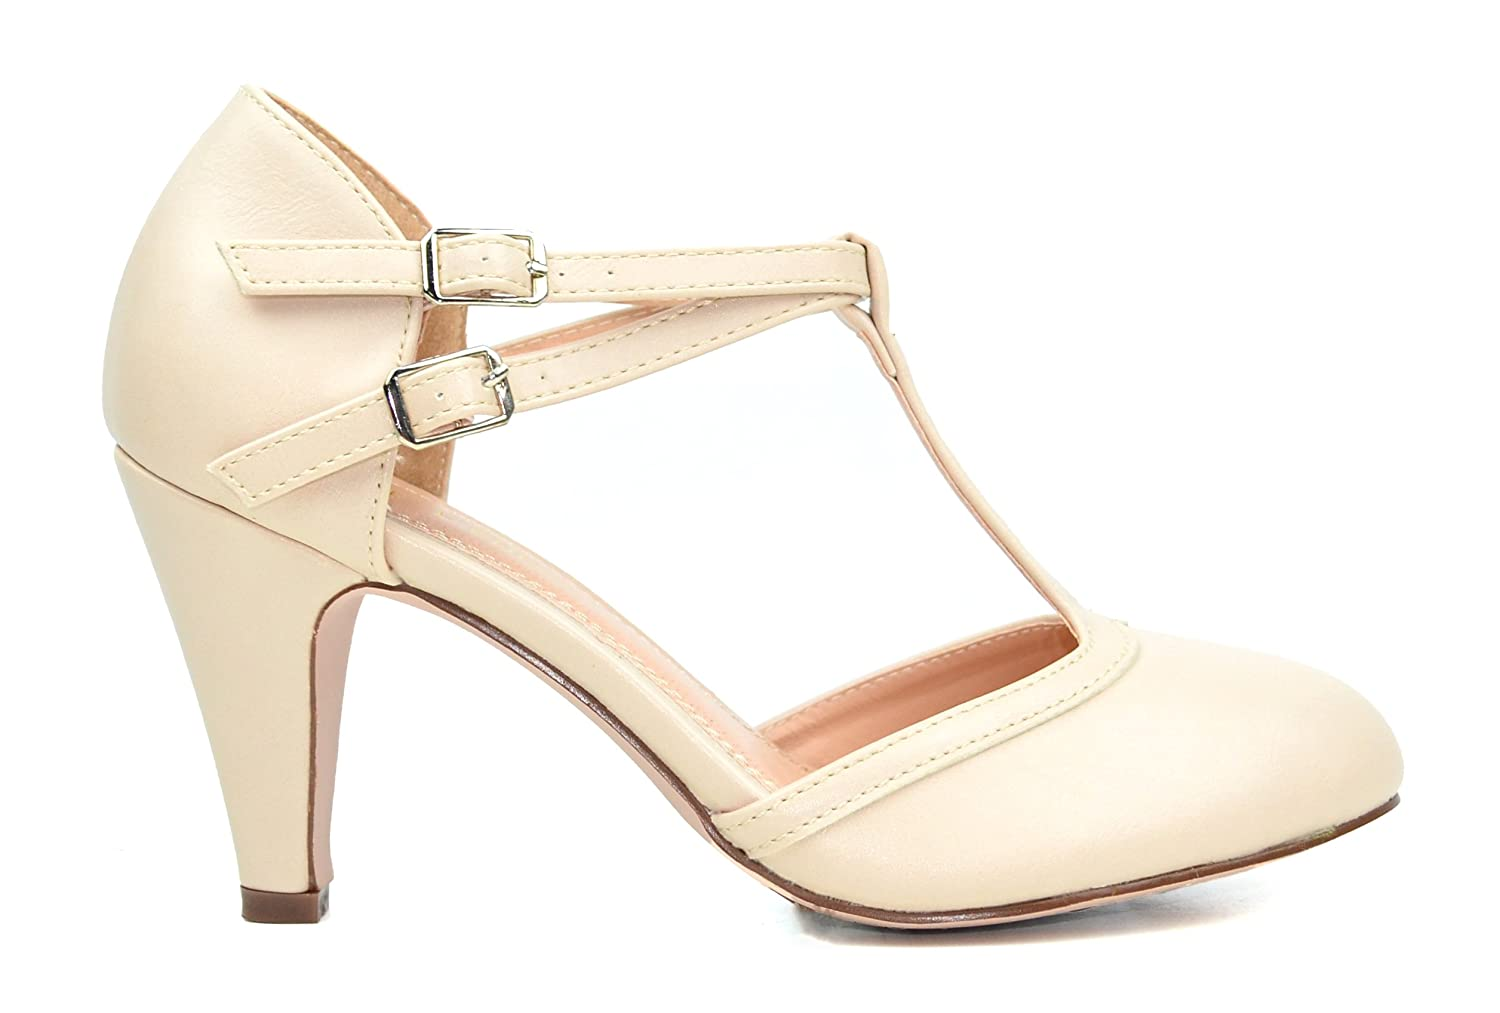 1920s Style Shoes Chase & Chloe Kimmy-58 Womens Mary Jane T-Strap Round Toe Pump $47.44 AT vintagedancer.com